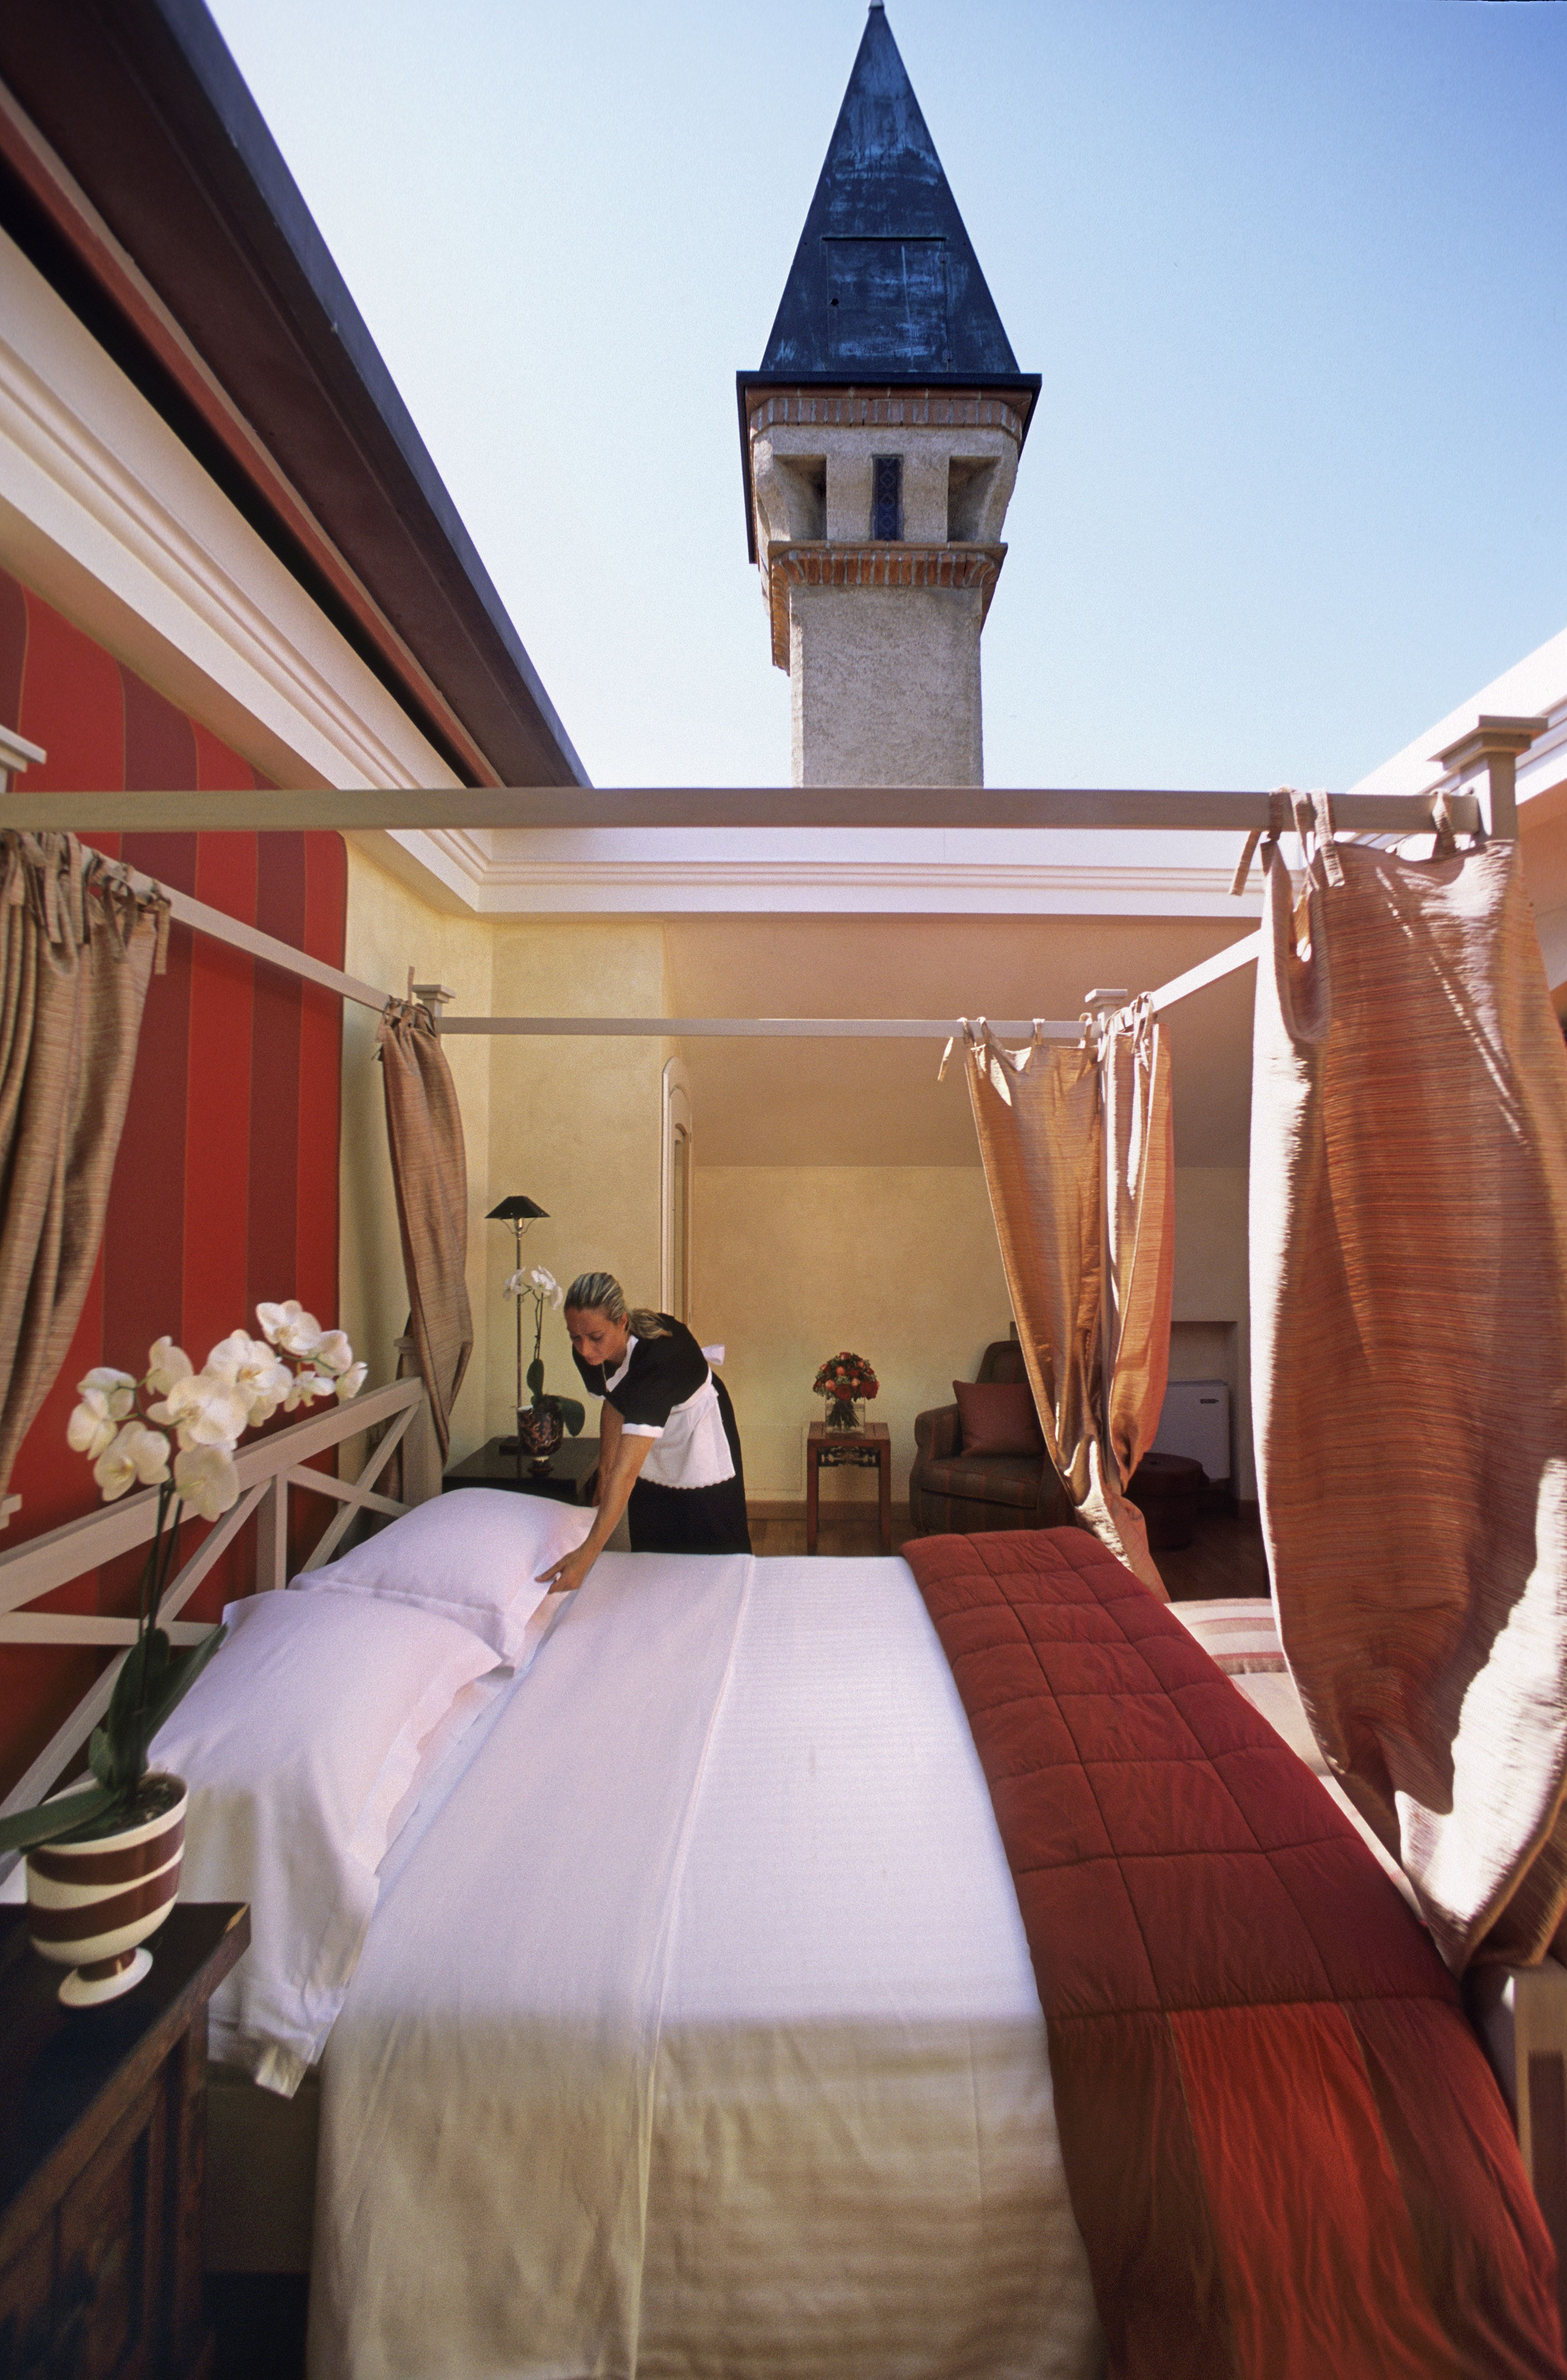 The Cabriolet Suite At Lalbereta, Relais & Chateau Hotel, Lombardy,